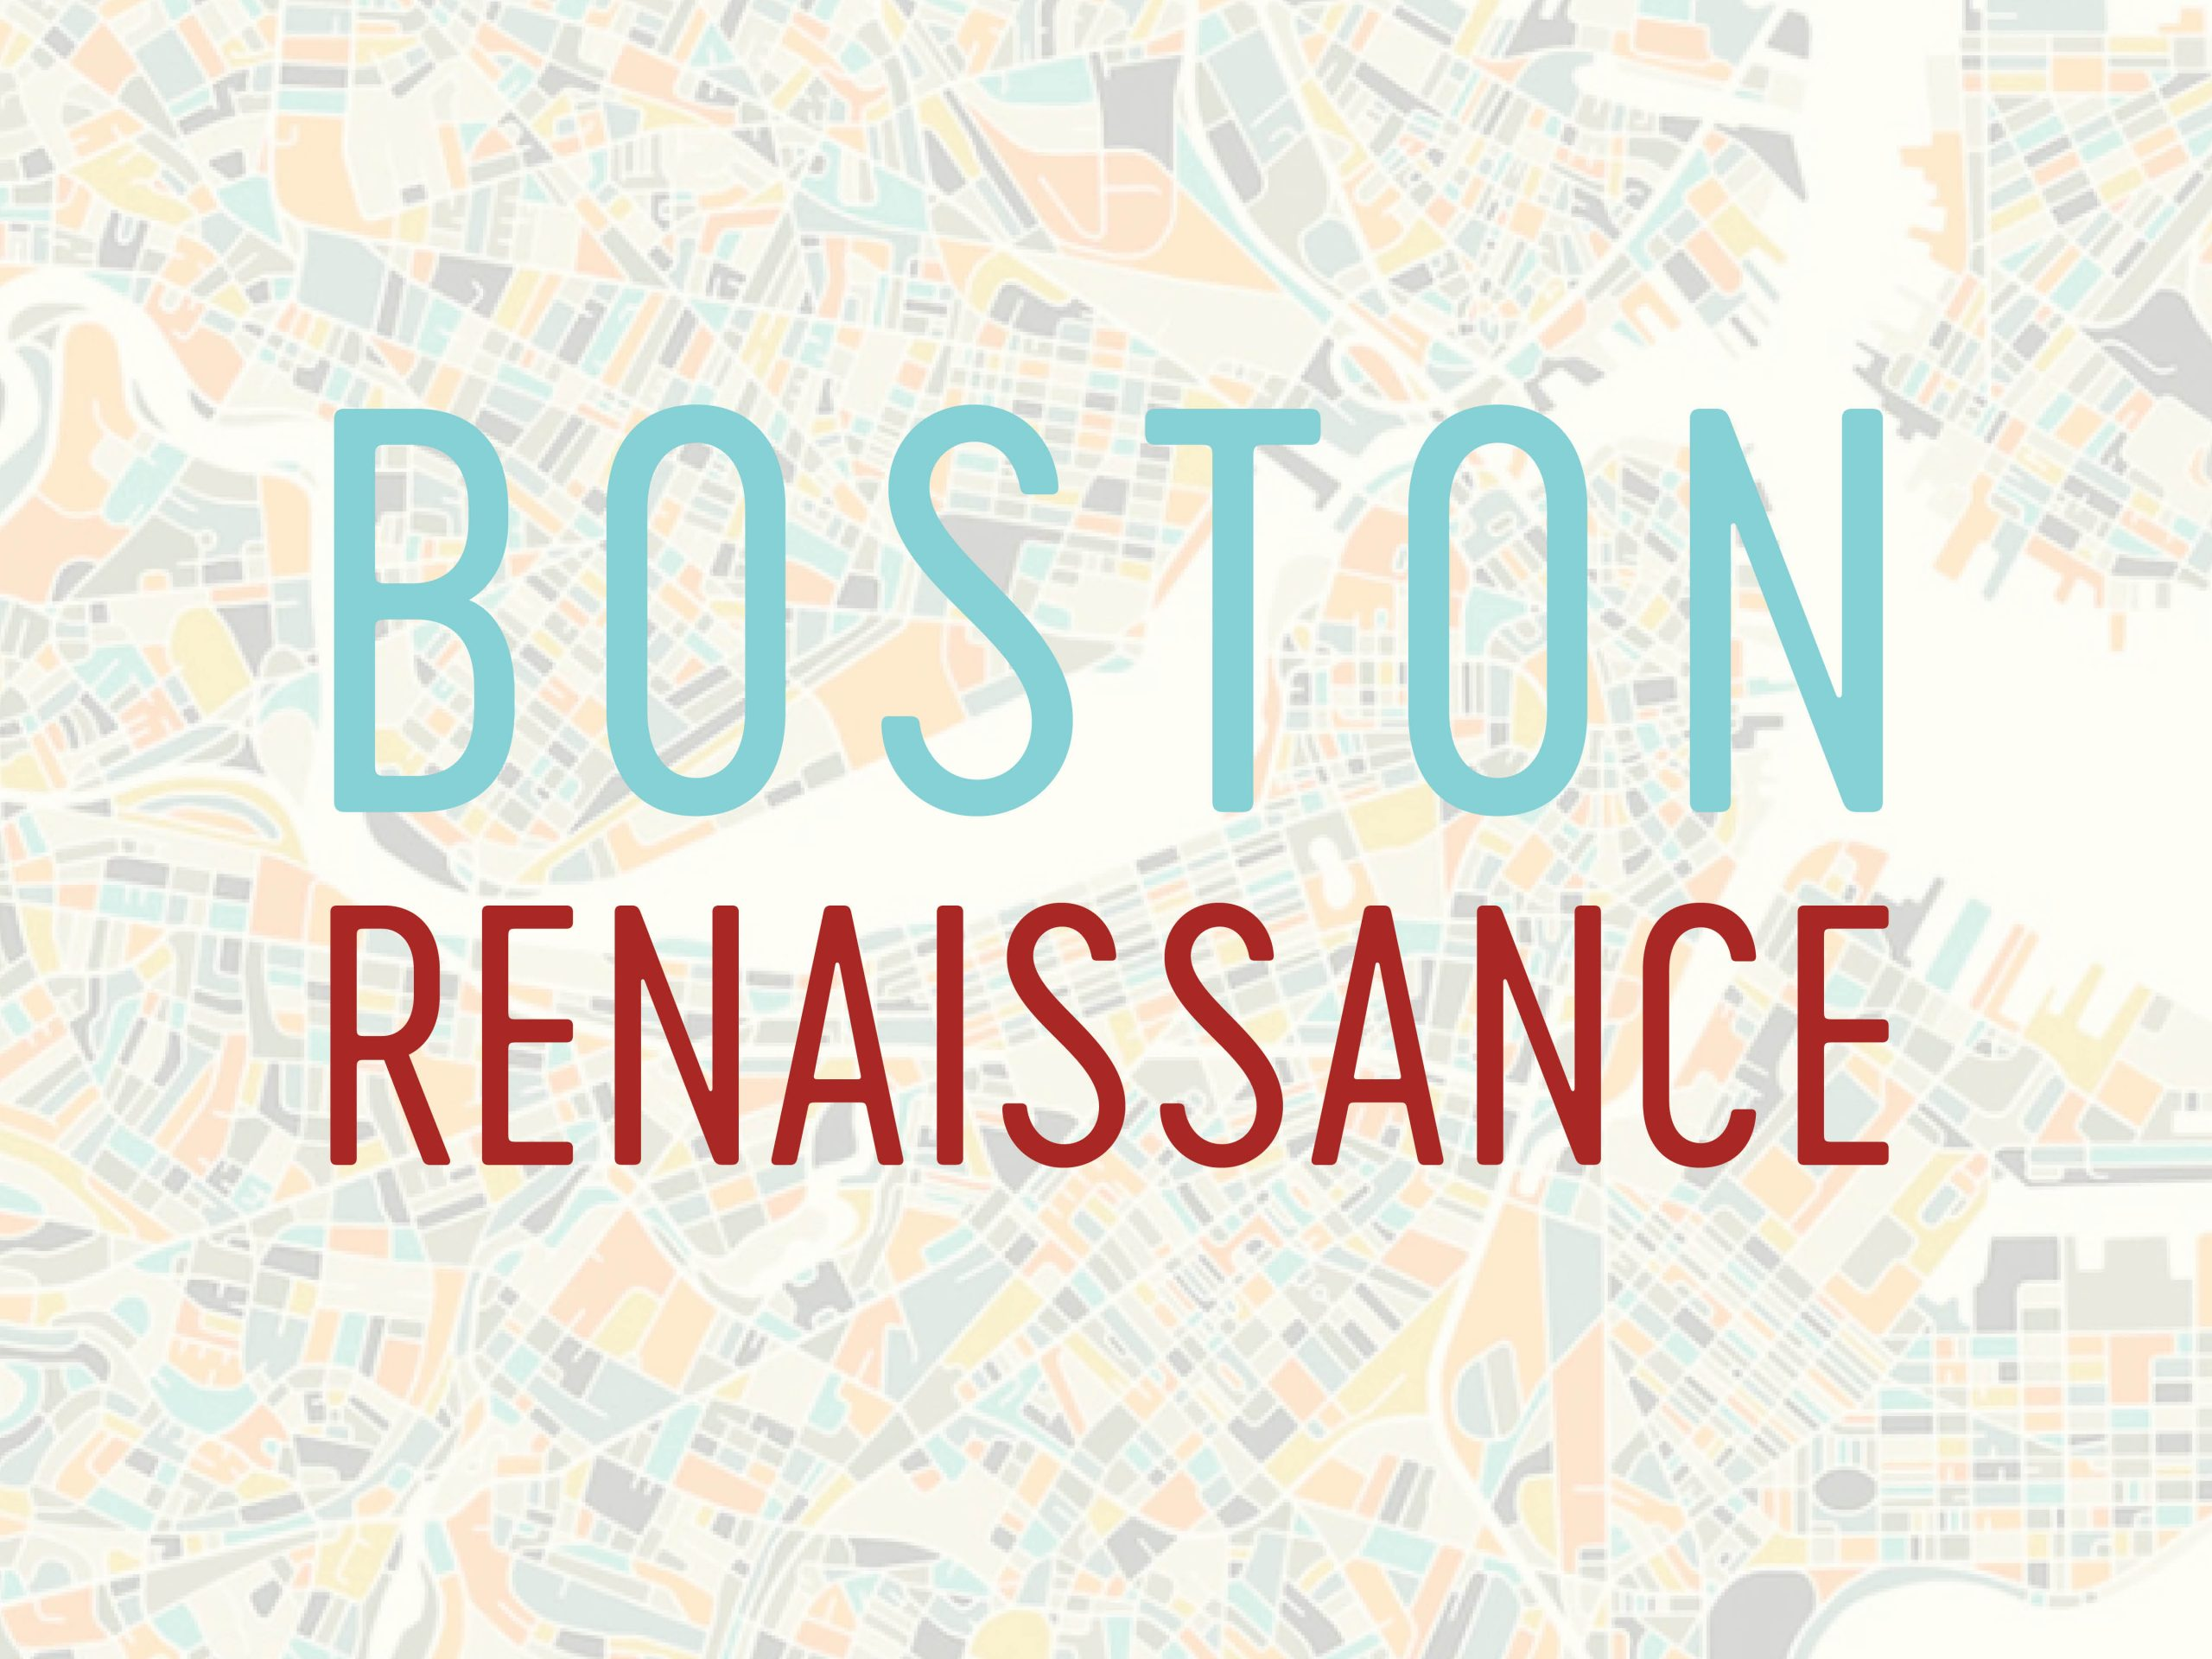 Boston Renaissance